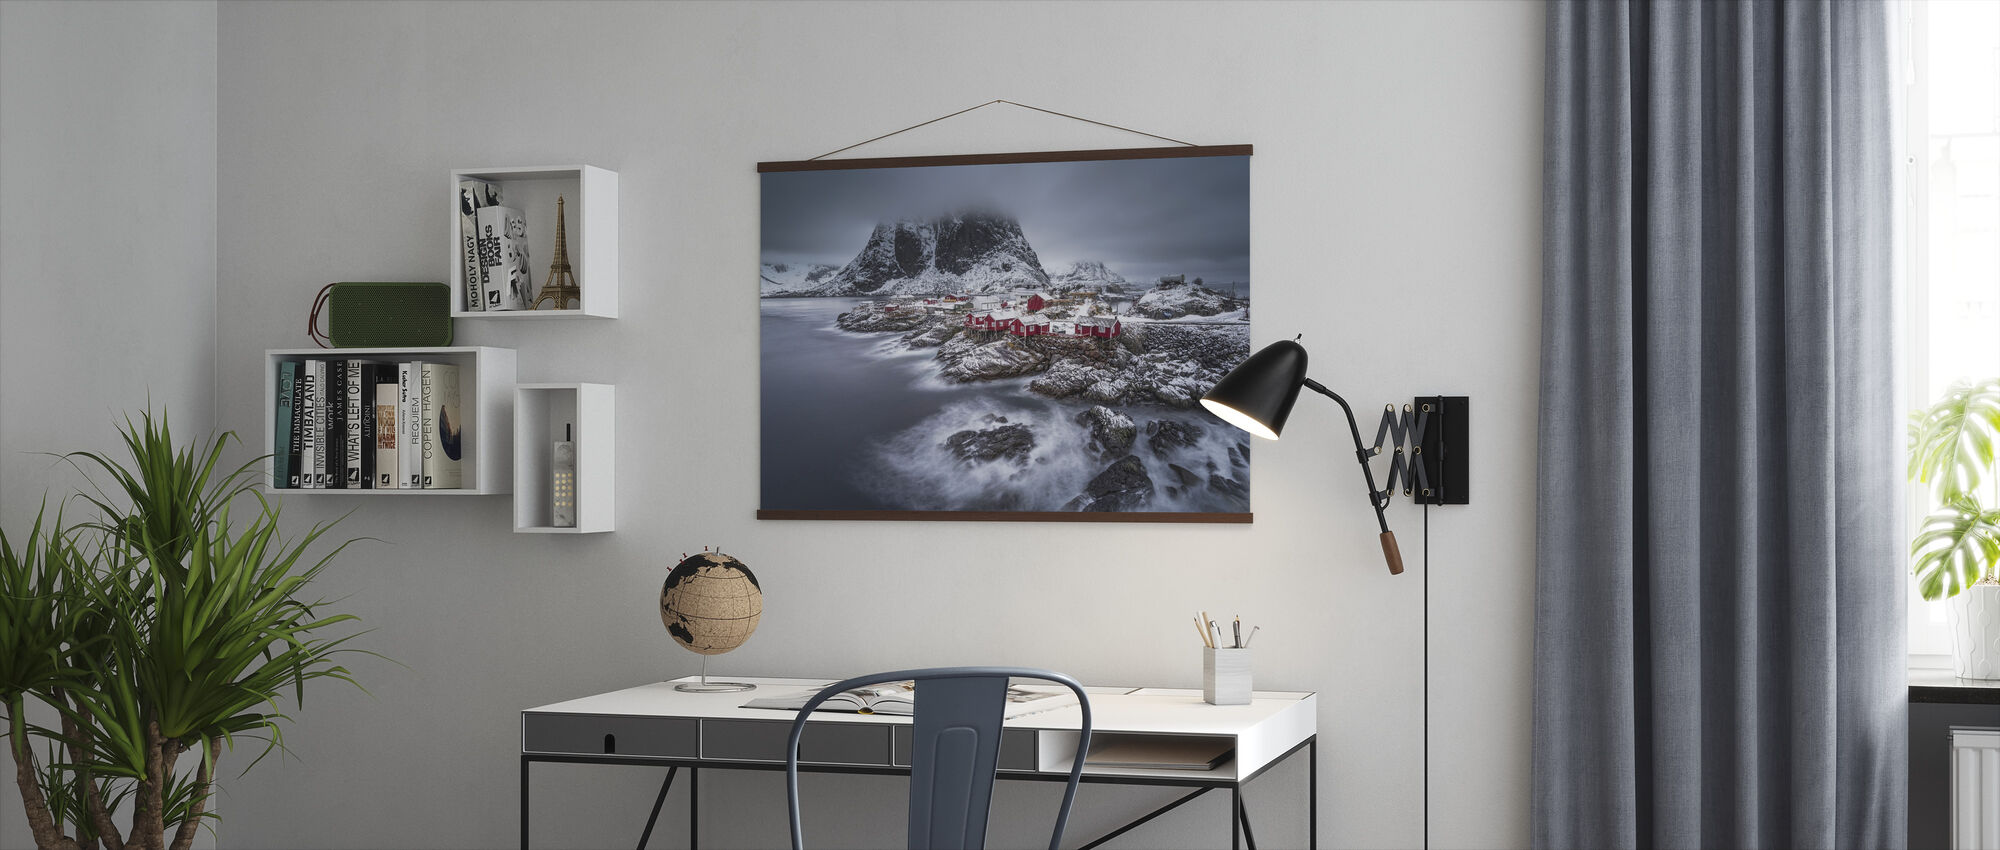 Winter Lofoten Islands - Plakat - Kontor